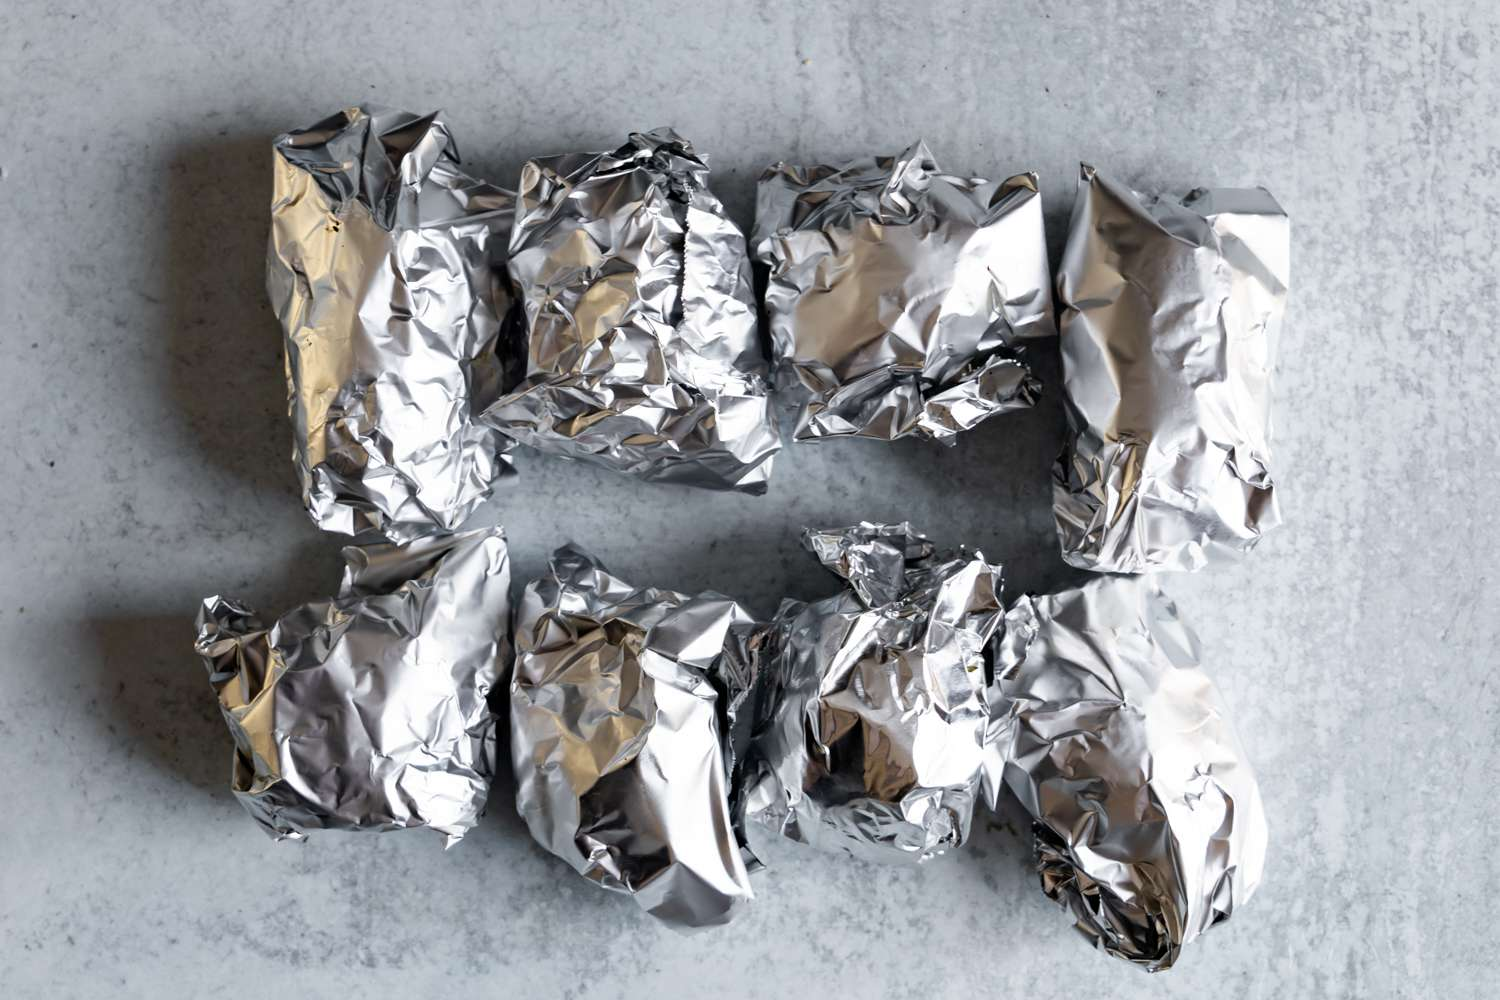 Potatoes wrapped with aluminum foil